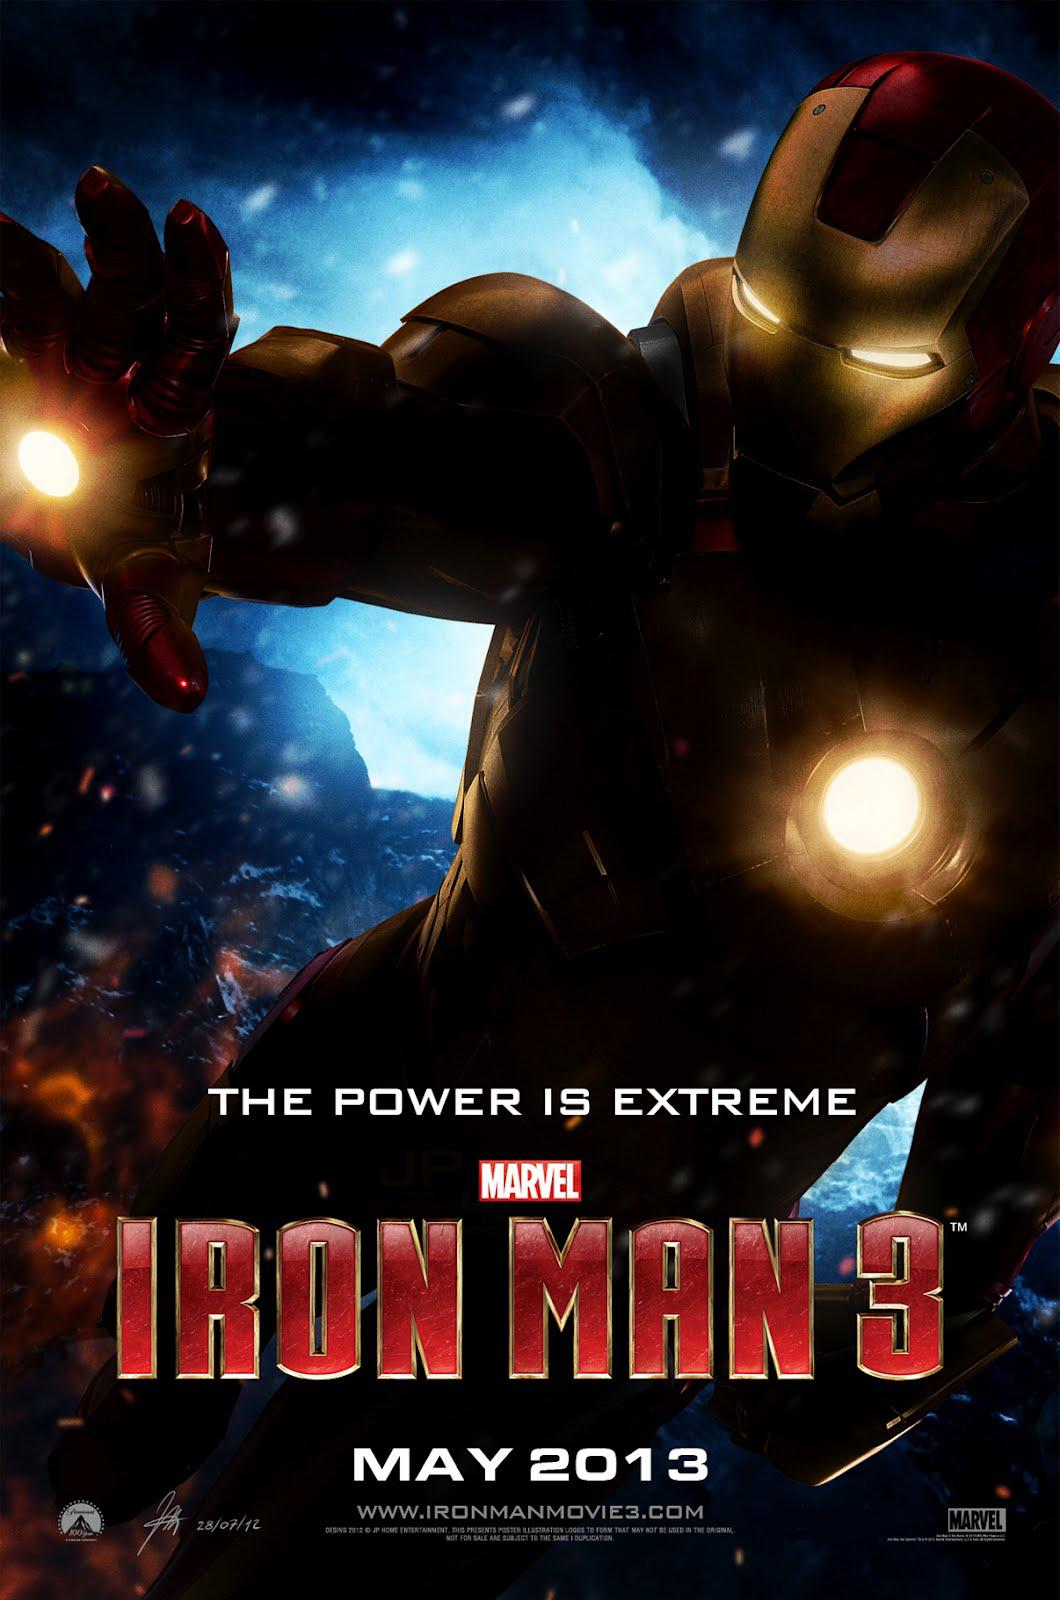 iron man 3 Marvel studios unleashes the best iron man adventure yet, starring robert  downey jr and gwyneth paltrow when tony stark/iron man finds his world  reduced.